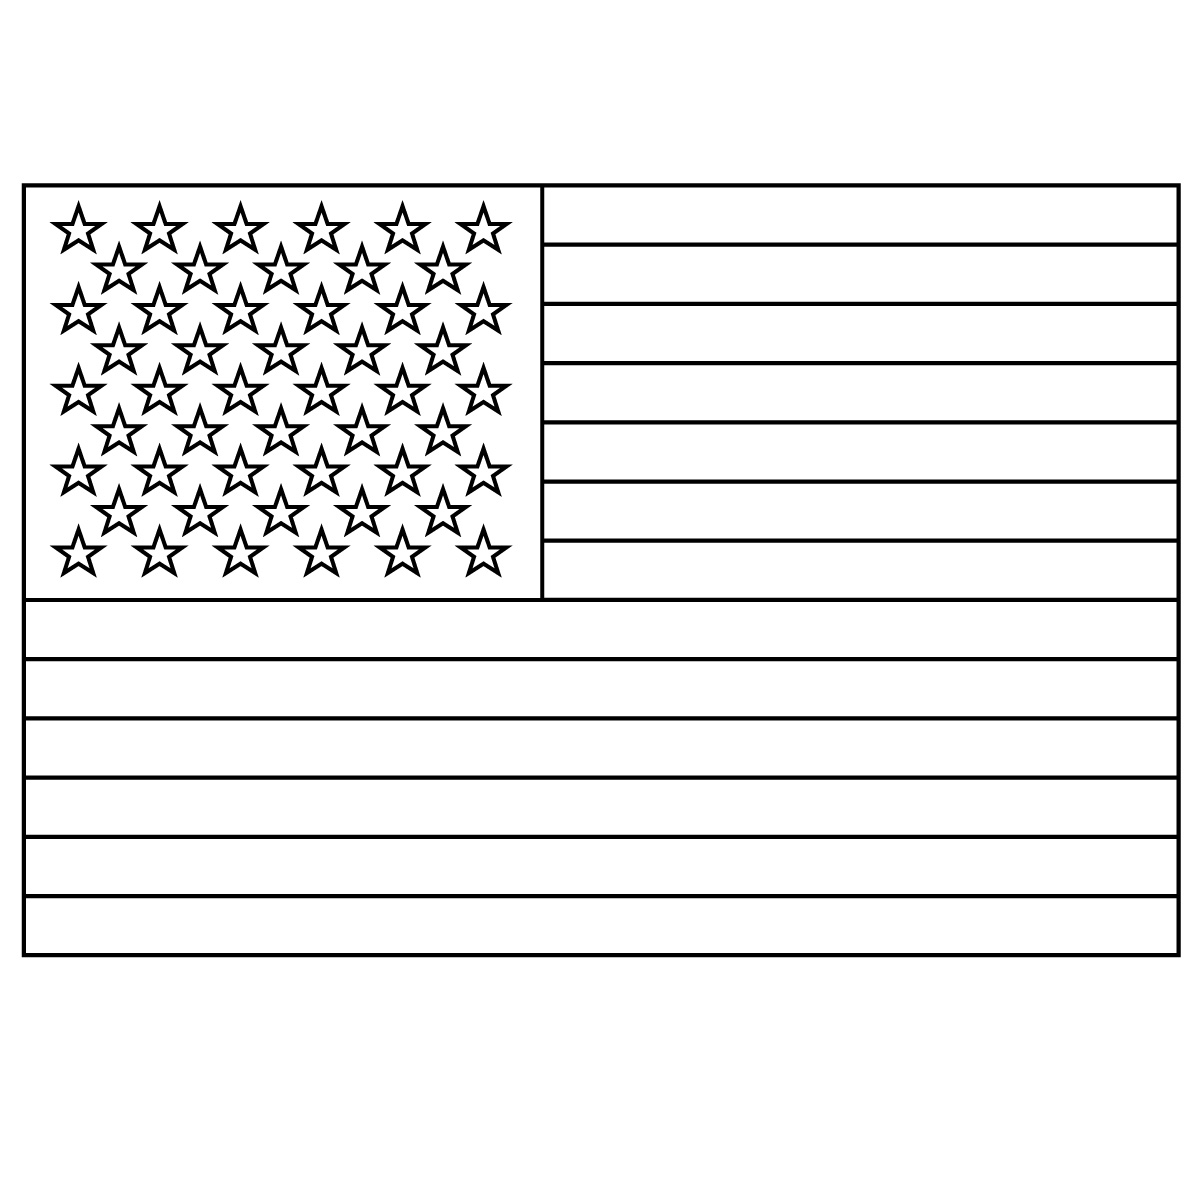 Post_american Flag Star Template Printable_359133 on 13 Colonies Printable Coloring Pages